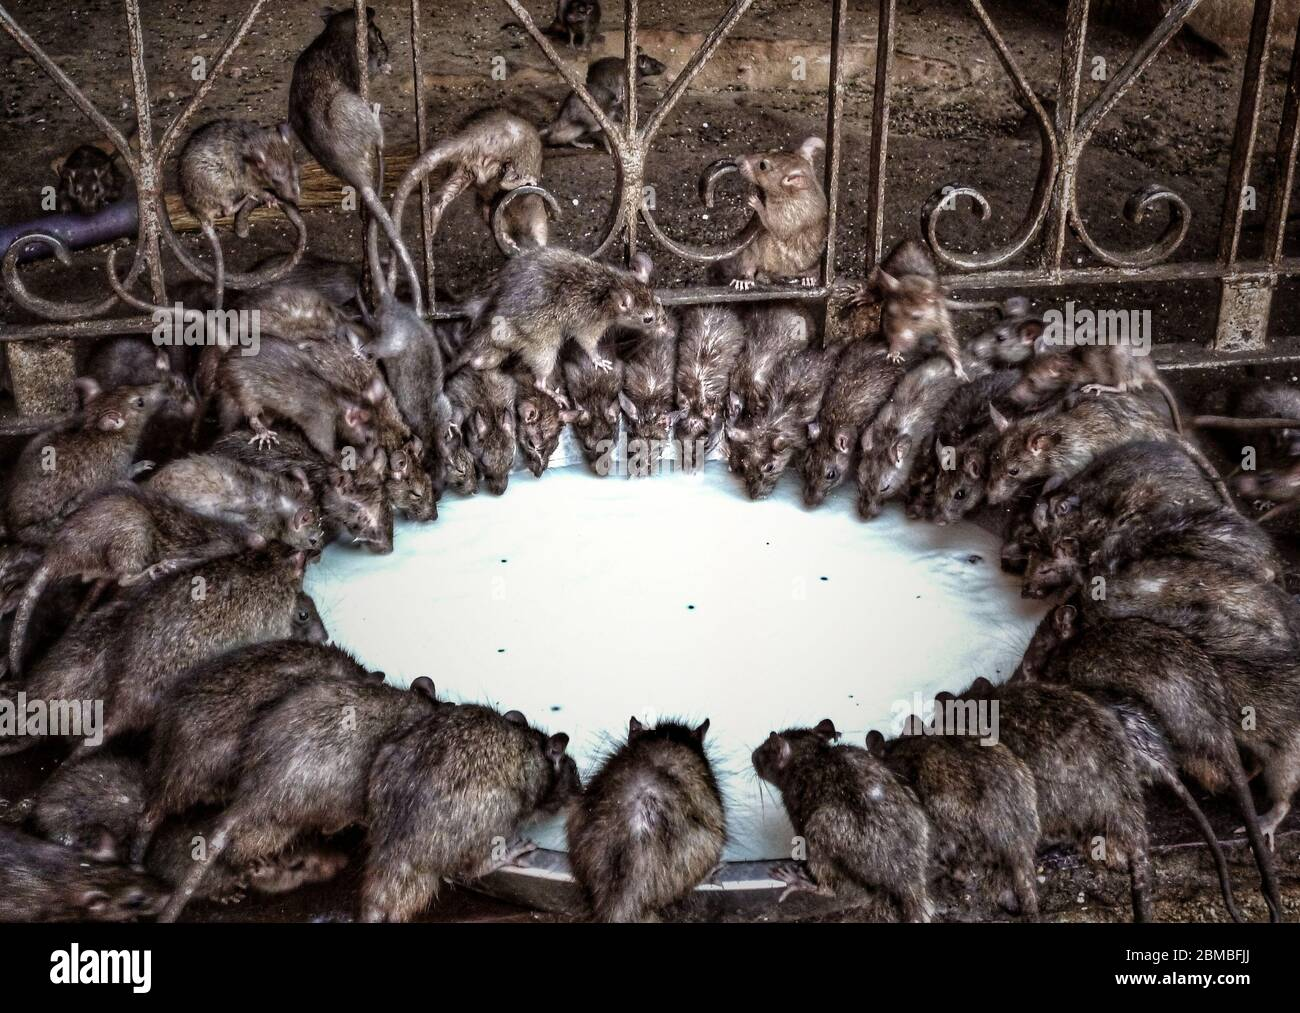 a-group-of-rats-rattus-rattus-sipping-mi